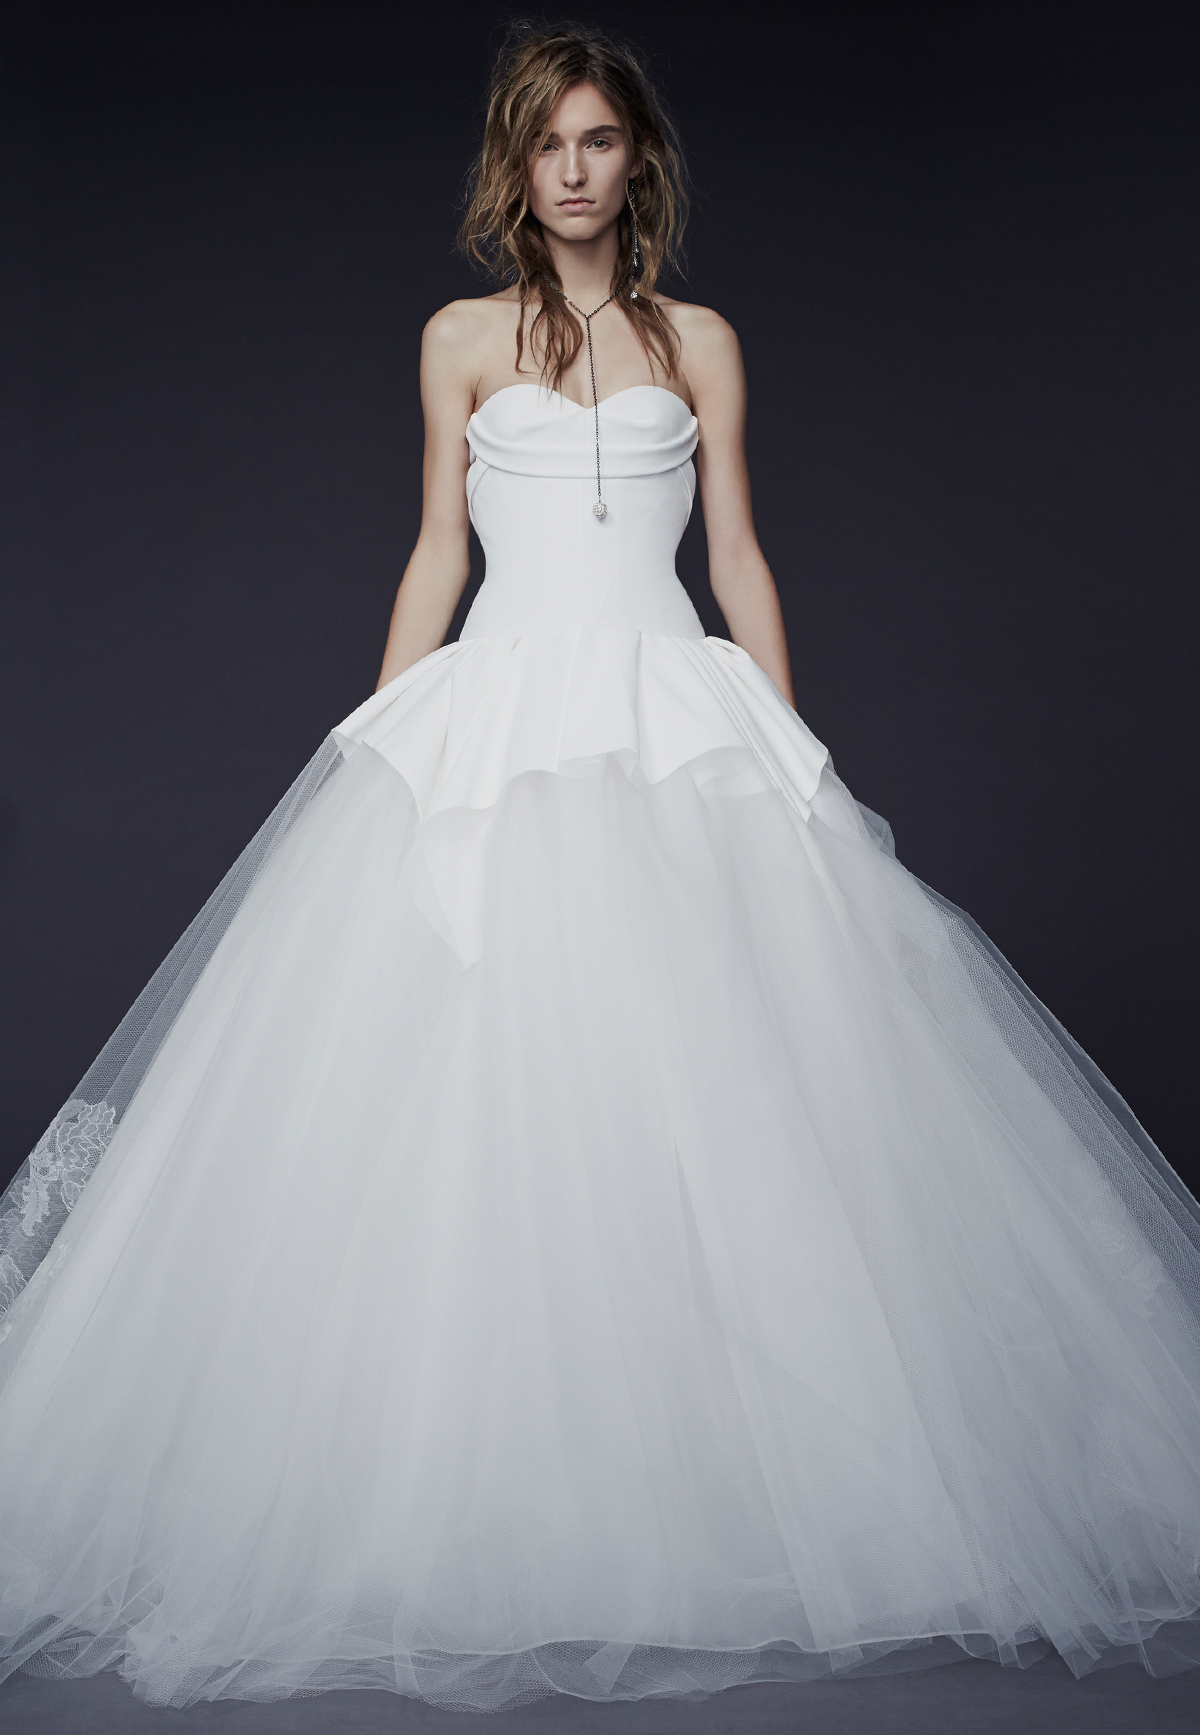 Christmas Dress Edmonton - All i want for christmas is a vera wang